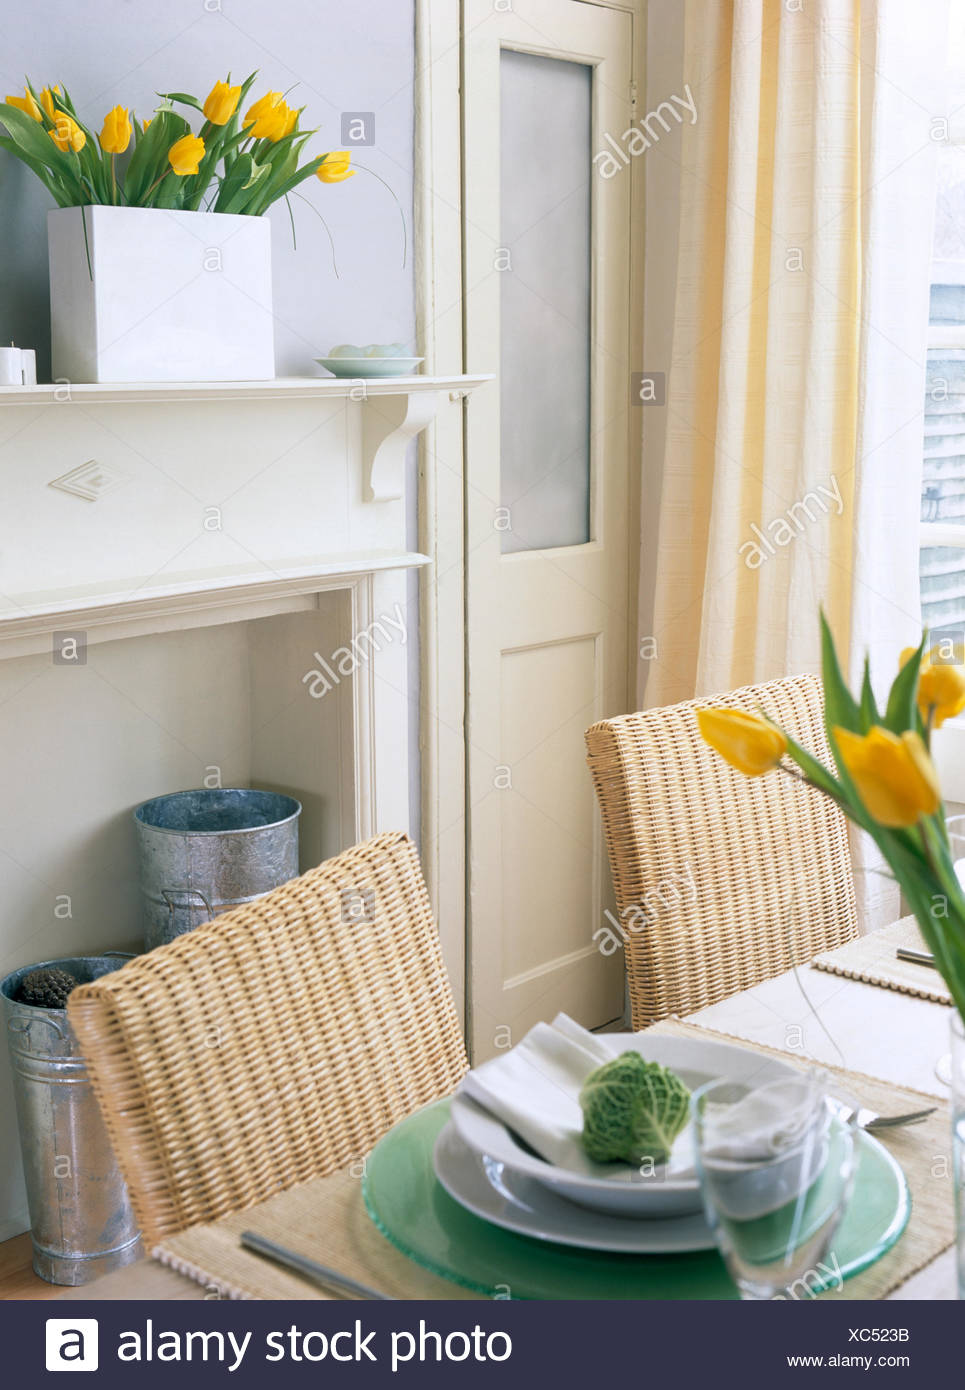 Wicker Back Chairs At Table With White And Green Crockery In An